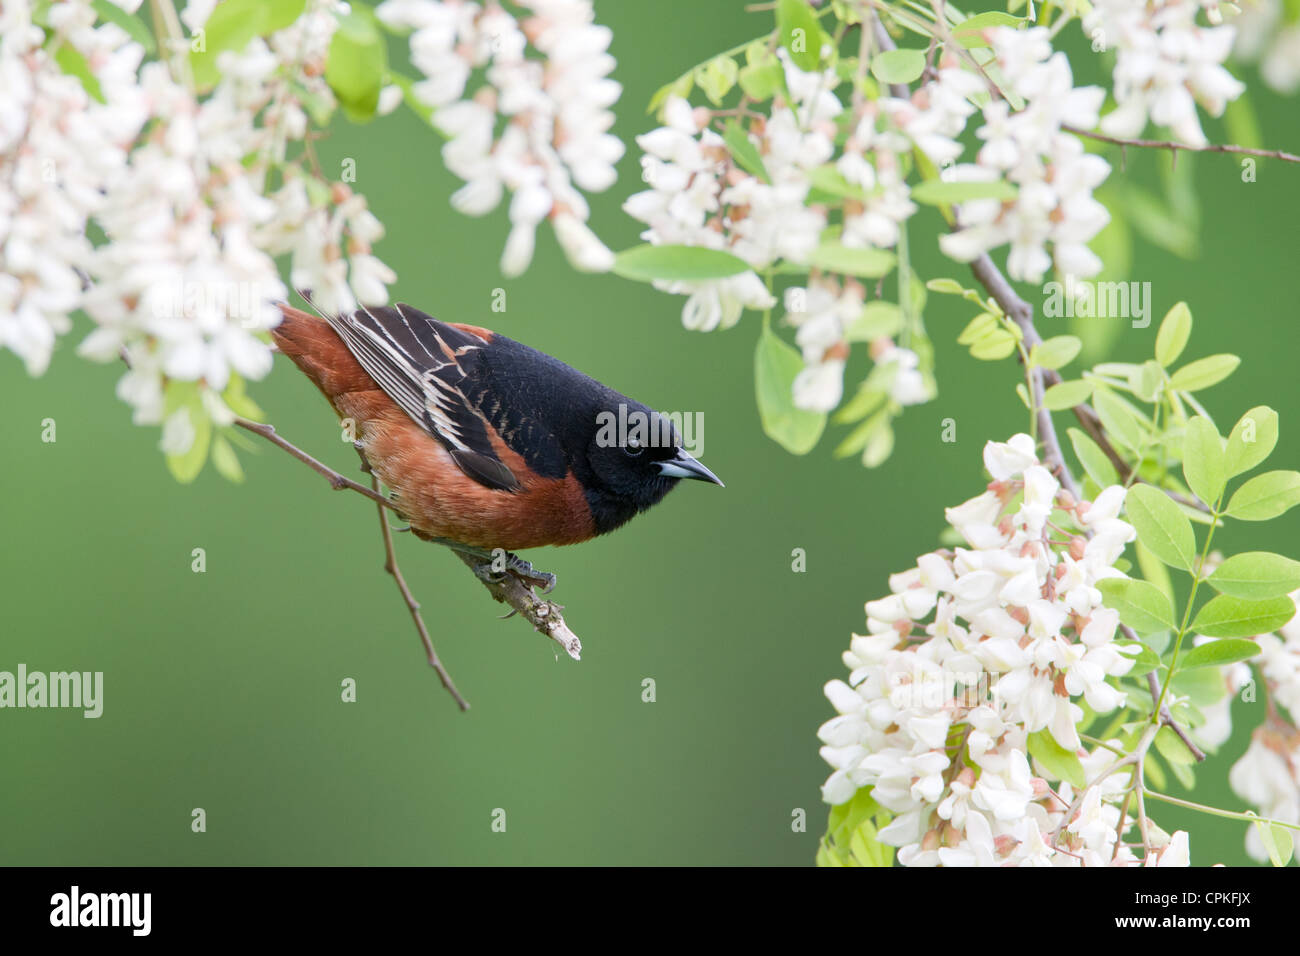 Orchard Oriole perched in Black Locust Flowers - Stock Image